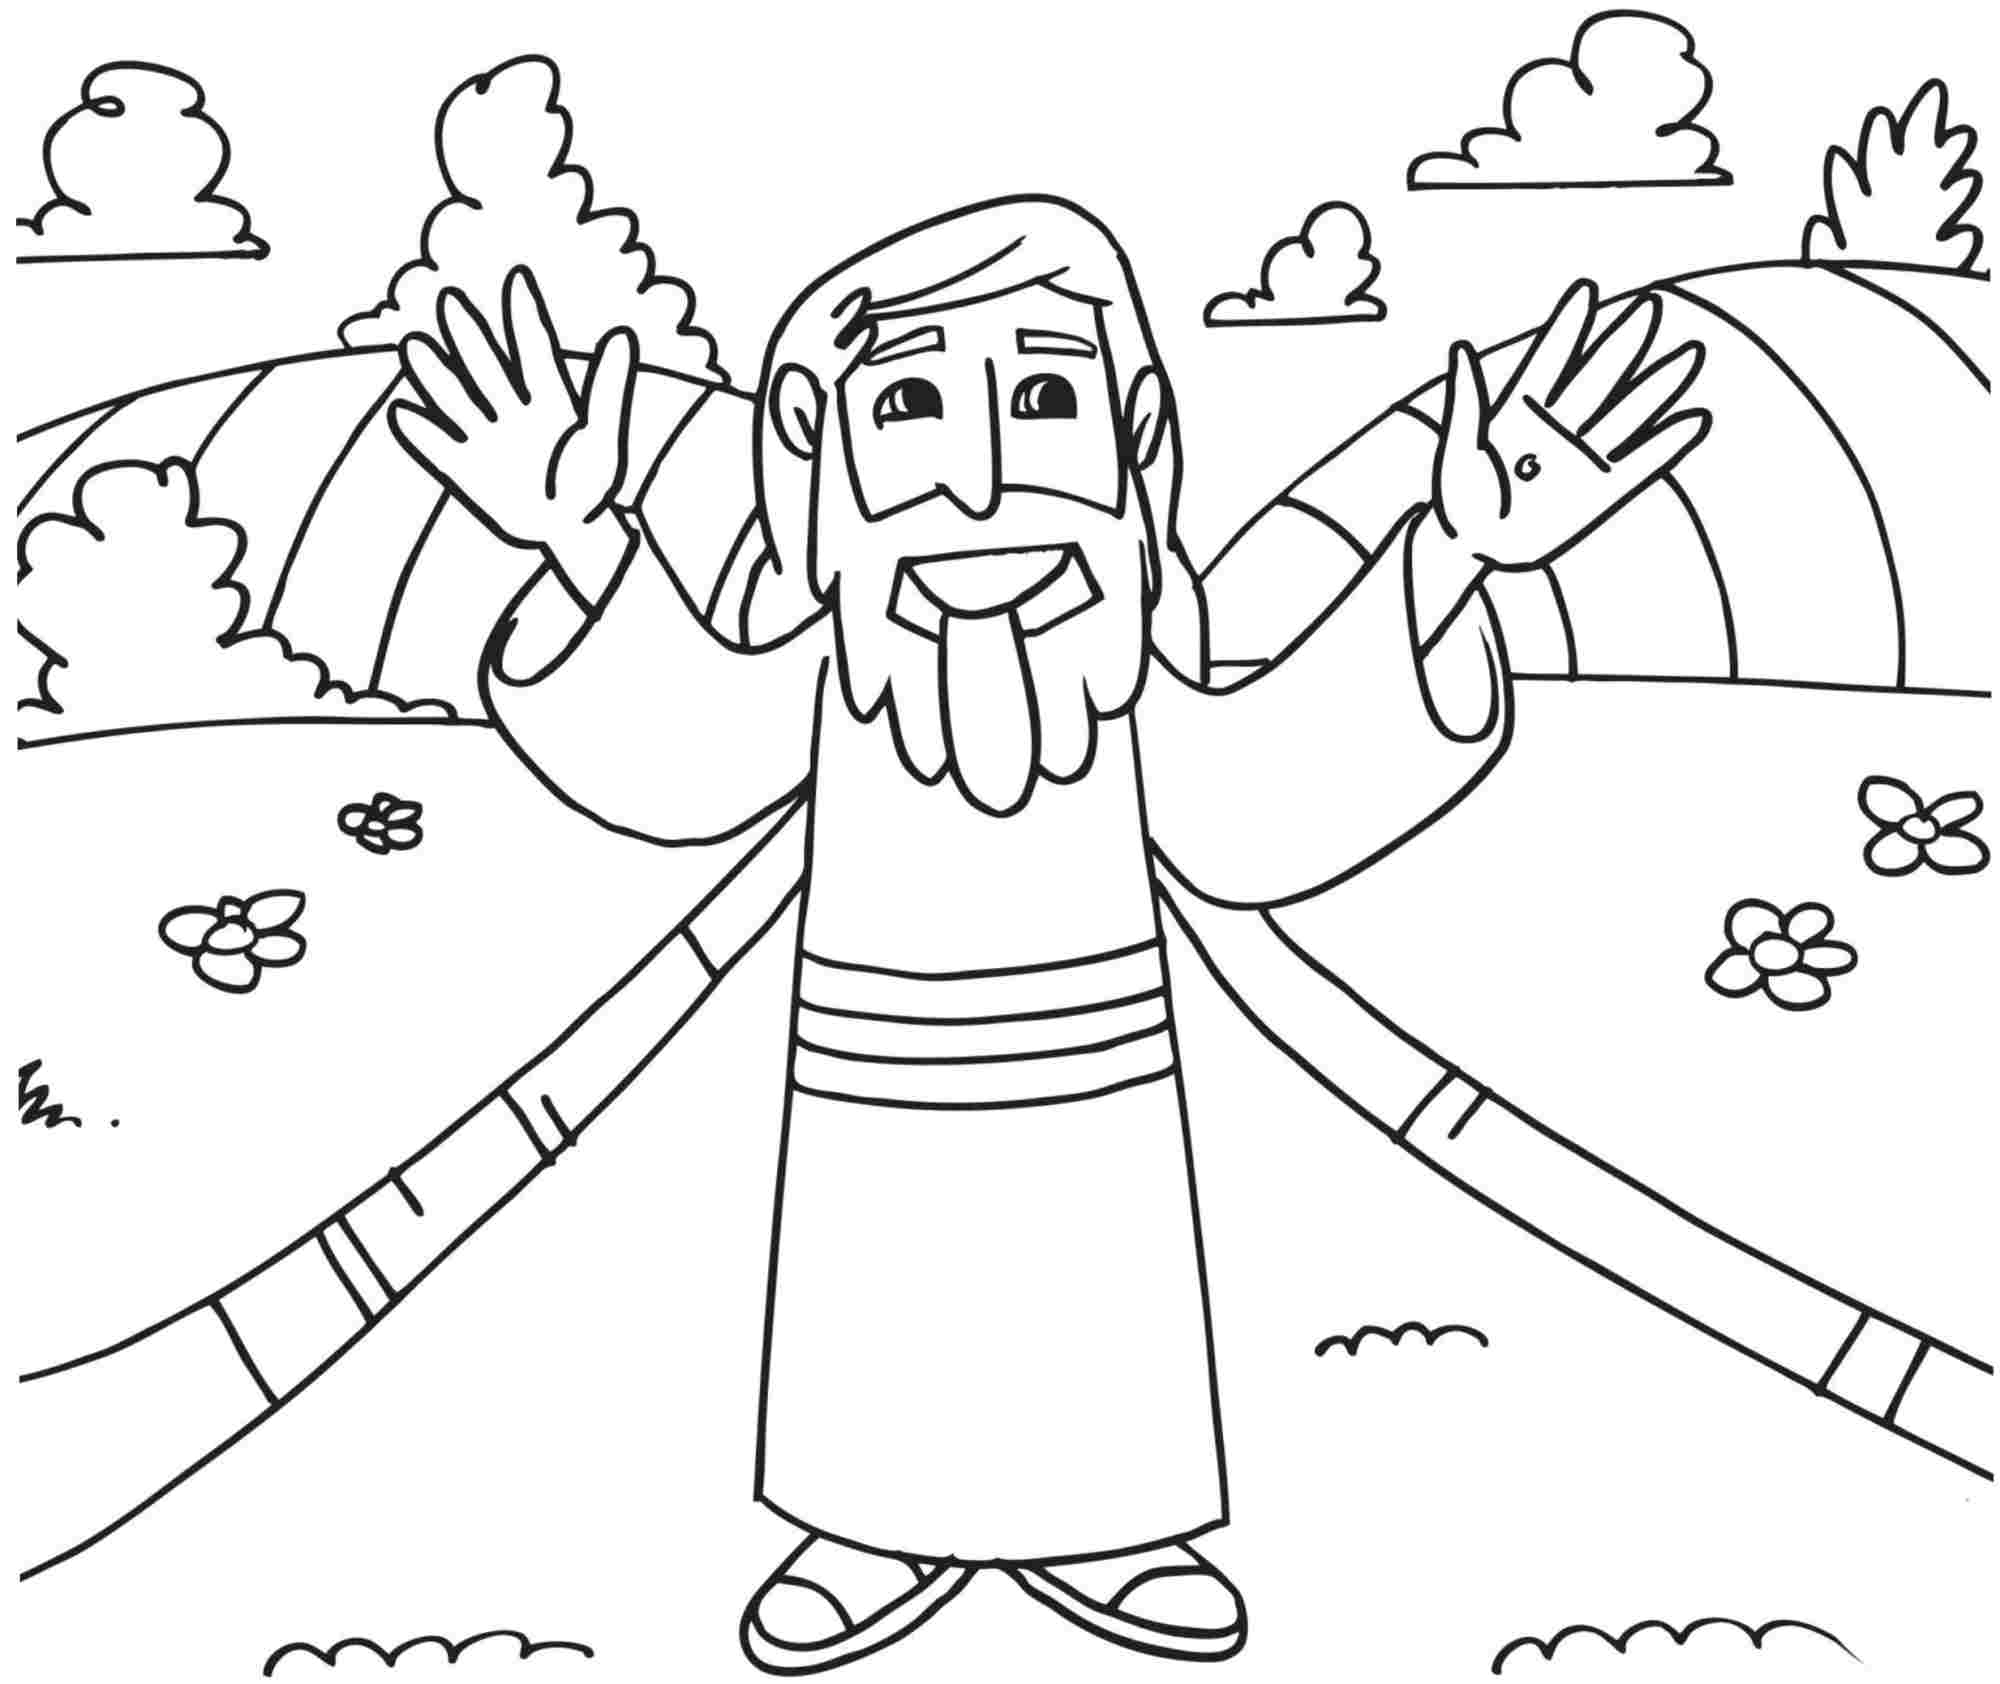 free christian easter coloring pages easter day coloring pages at getdrawings free download easter pages coloring christian free